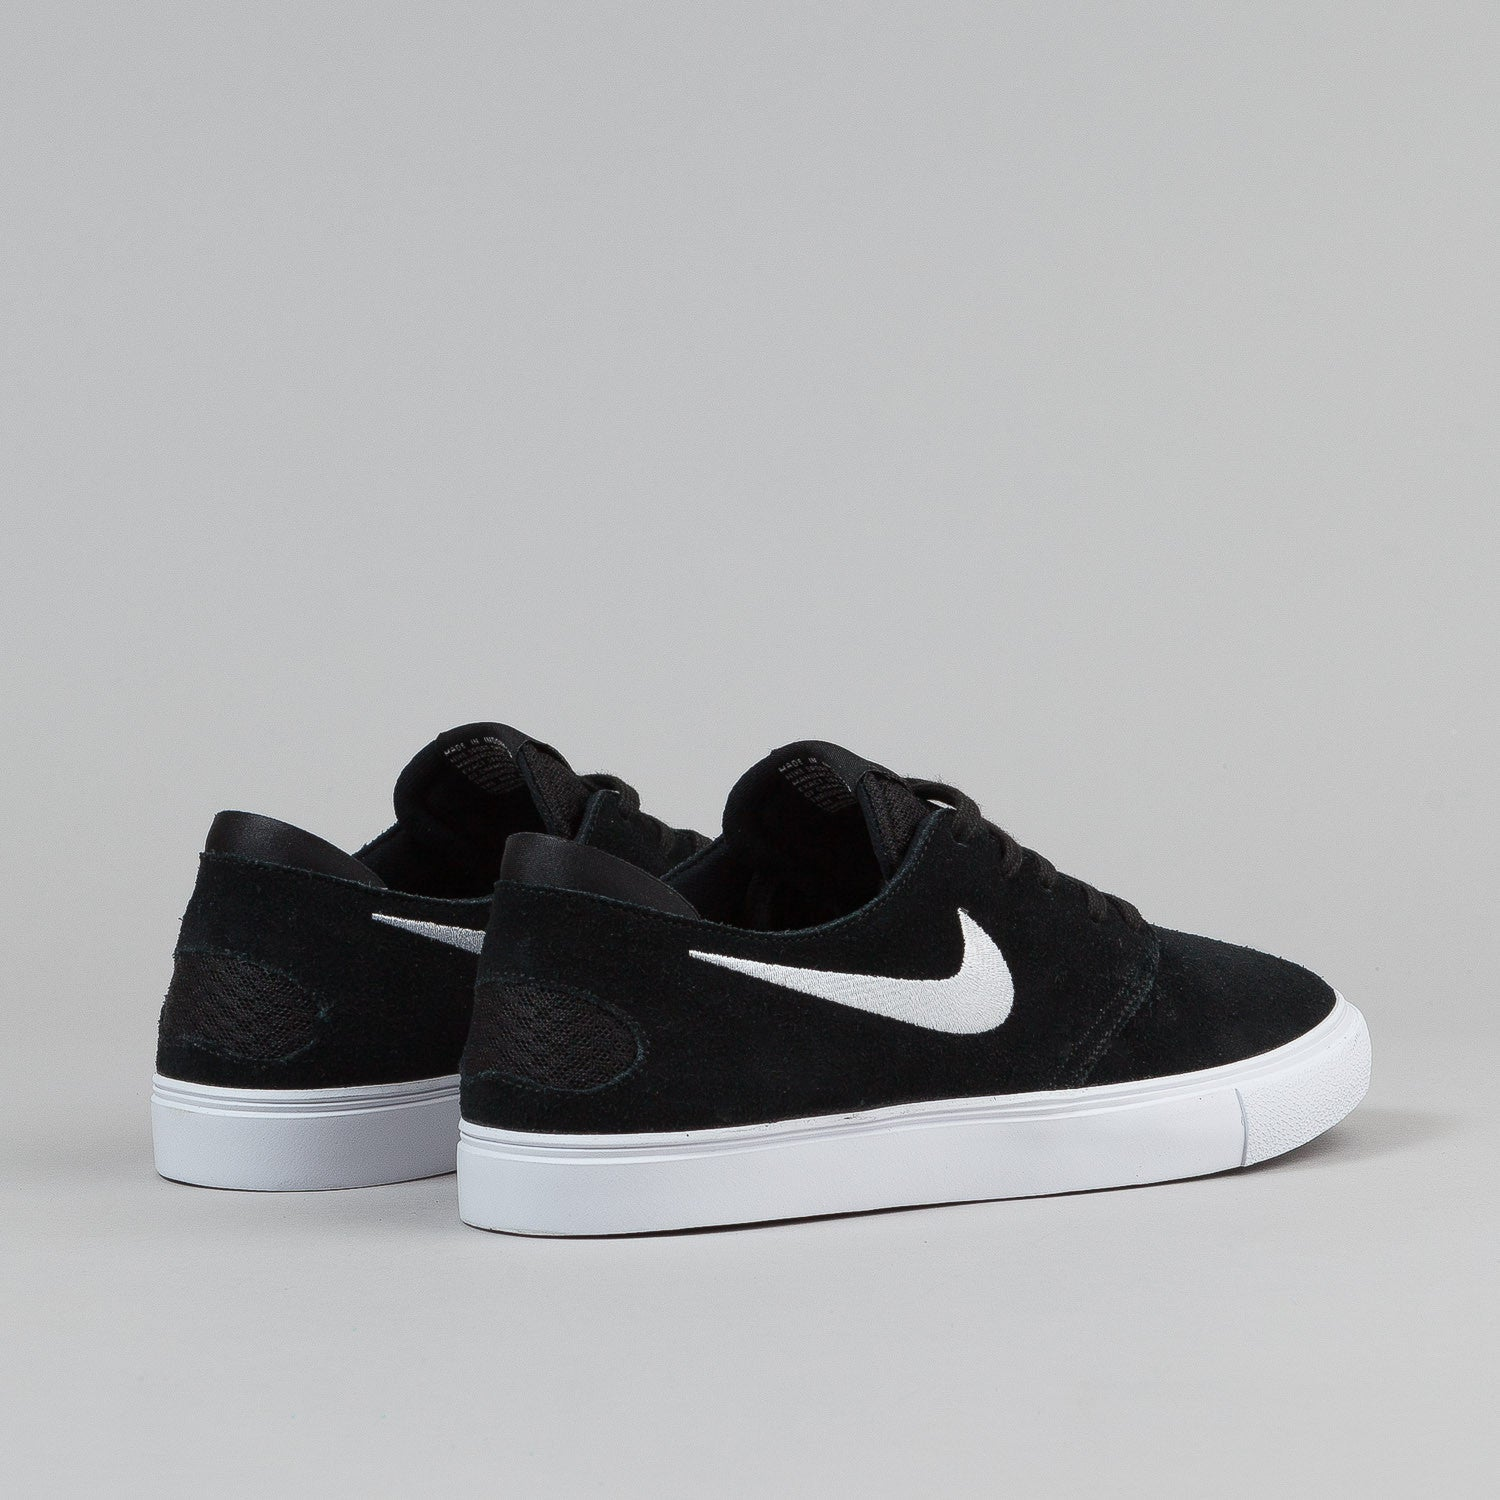 Nike SB Oneshot Shoes - Black - White